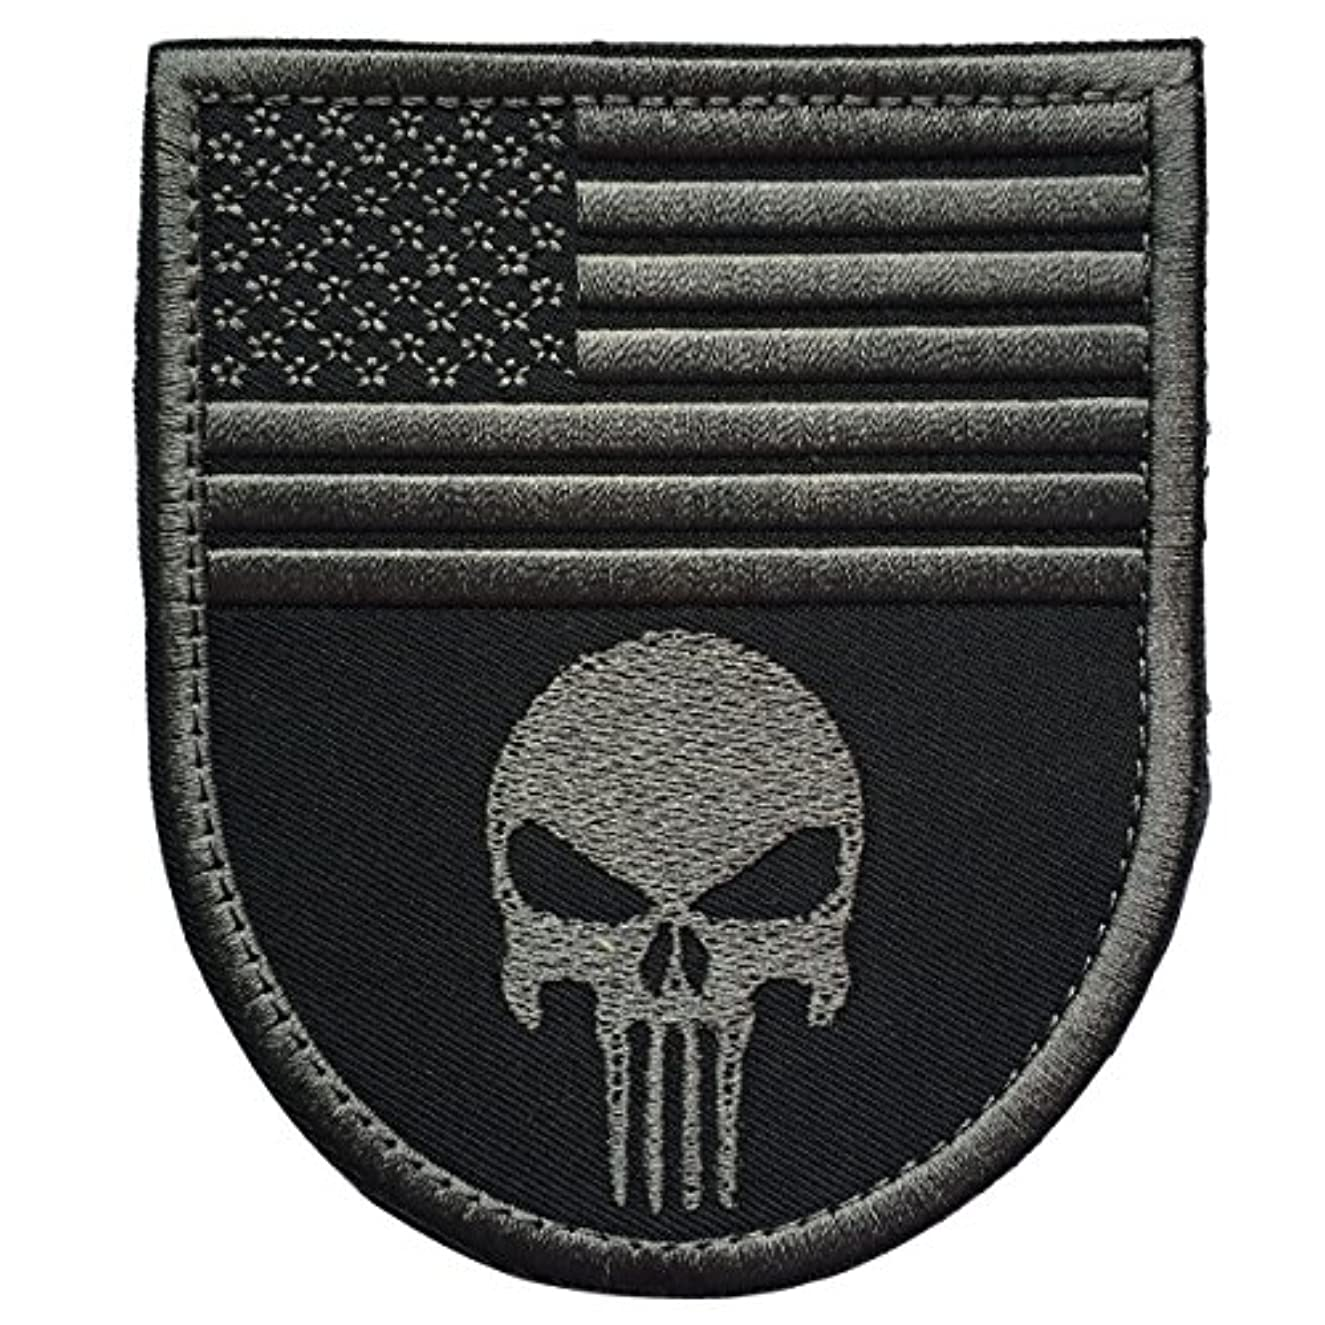 SpaceCar Gray Punisher w/USA American Flag Shield Shape Military Tactical Morale Badge Hook & Loop Fastener Patch 3.54